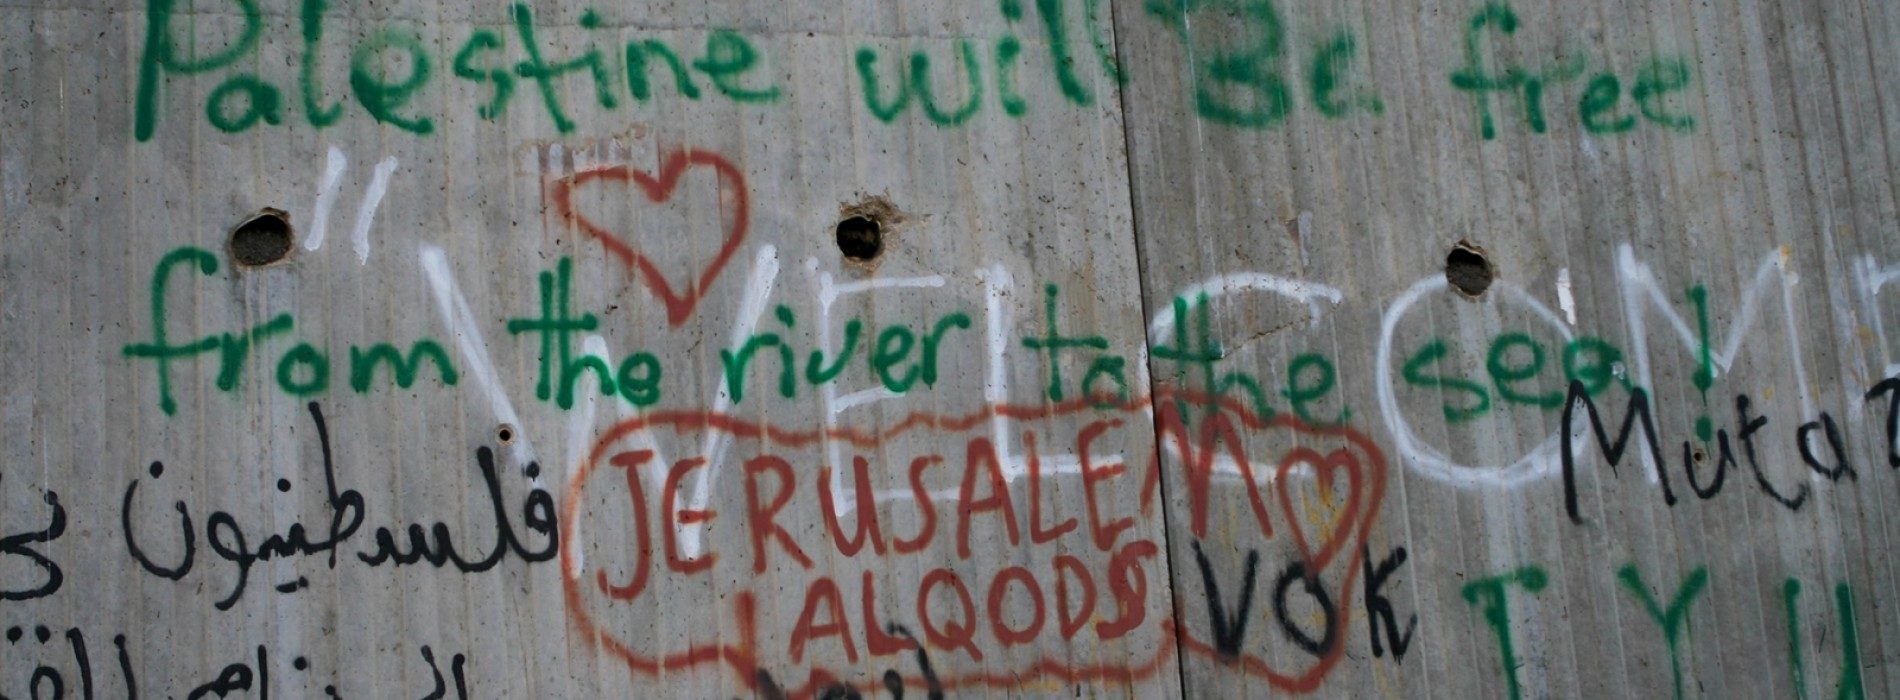 Palestine: A New Tide of Support